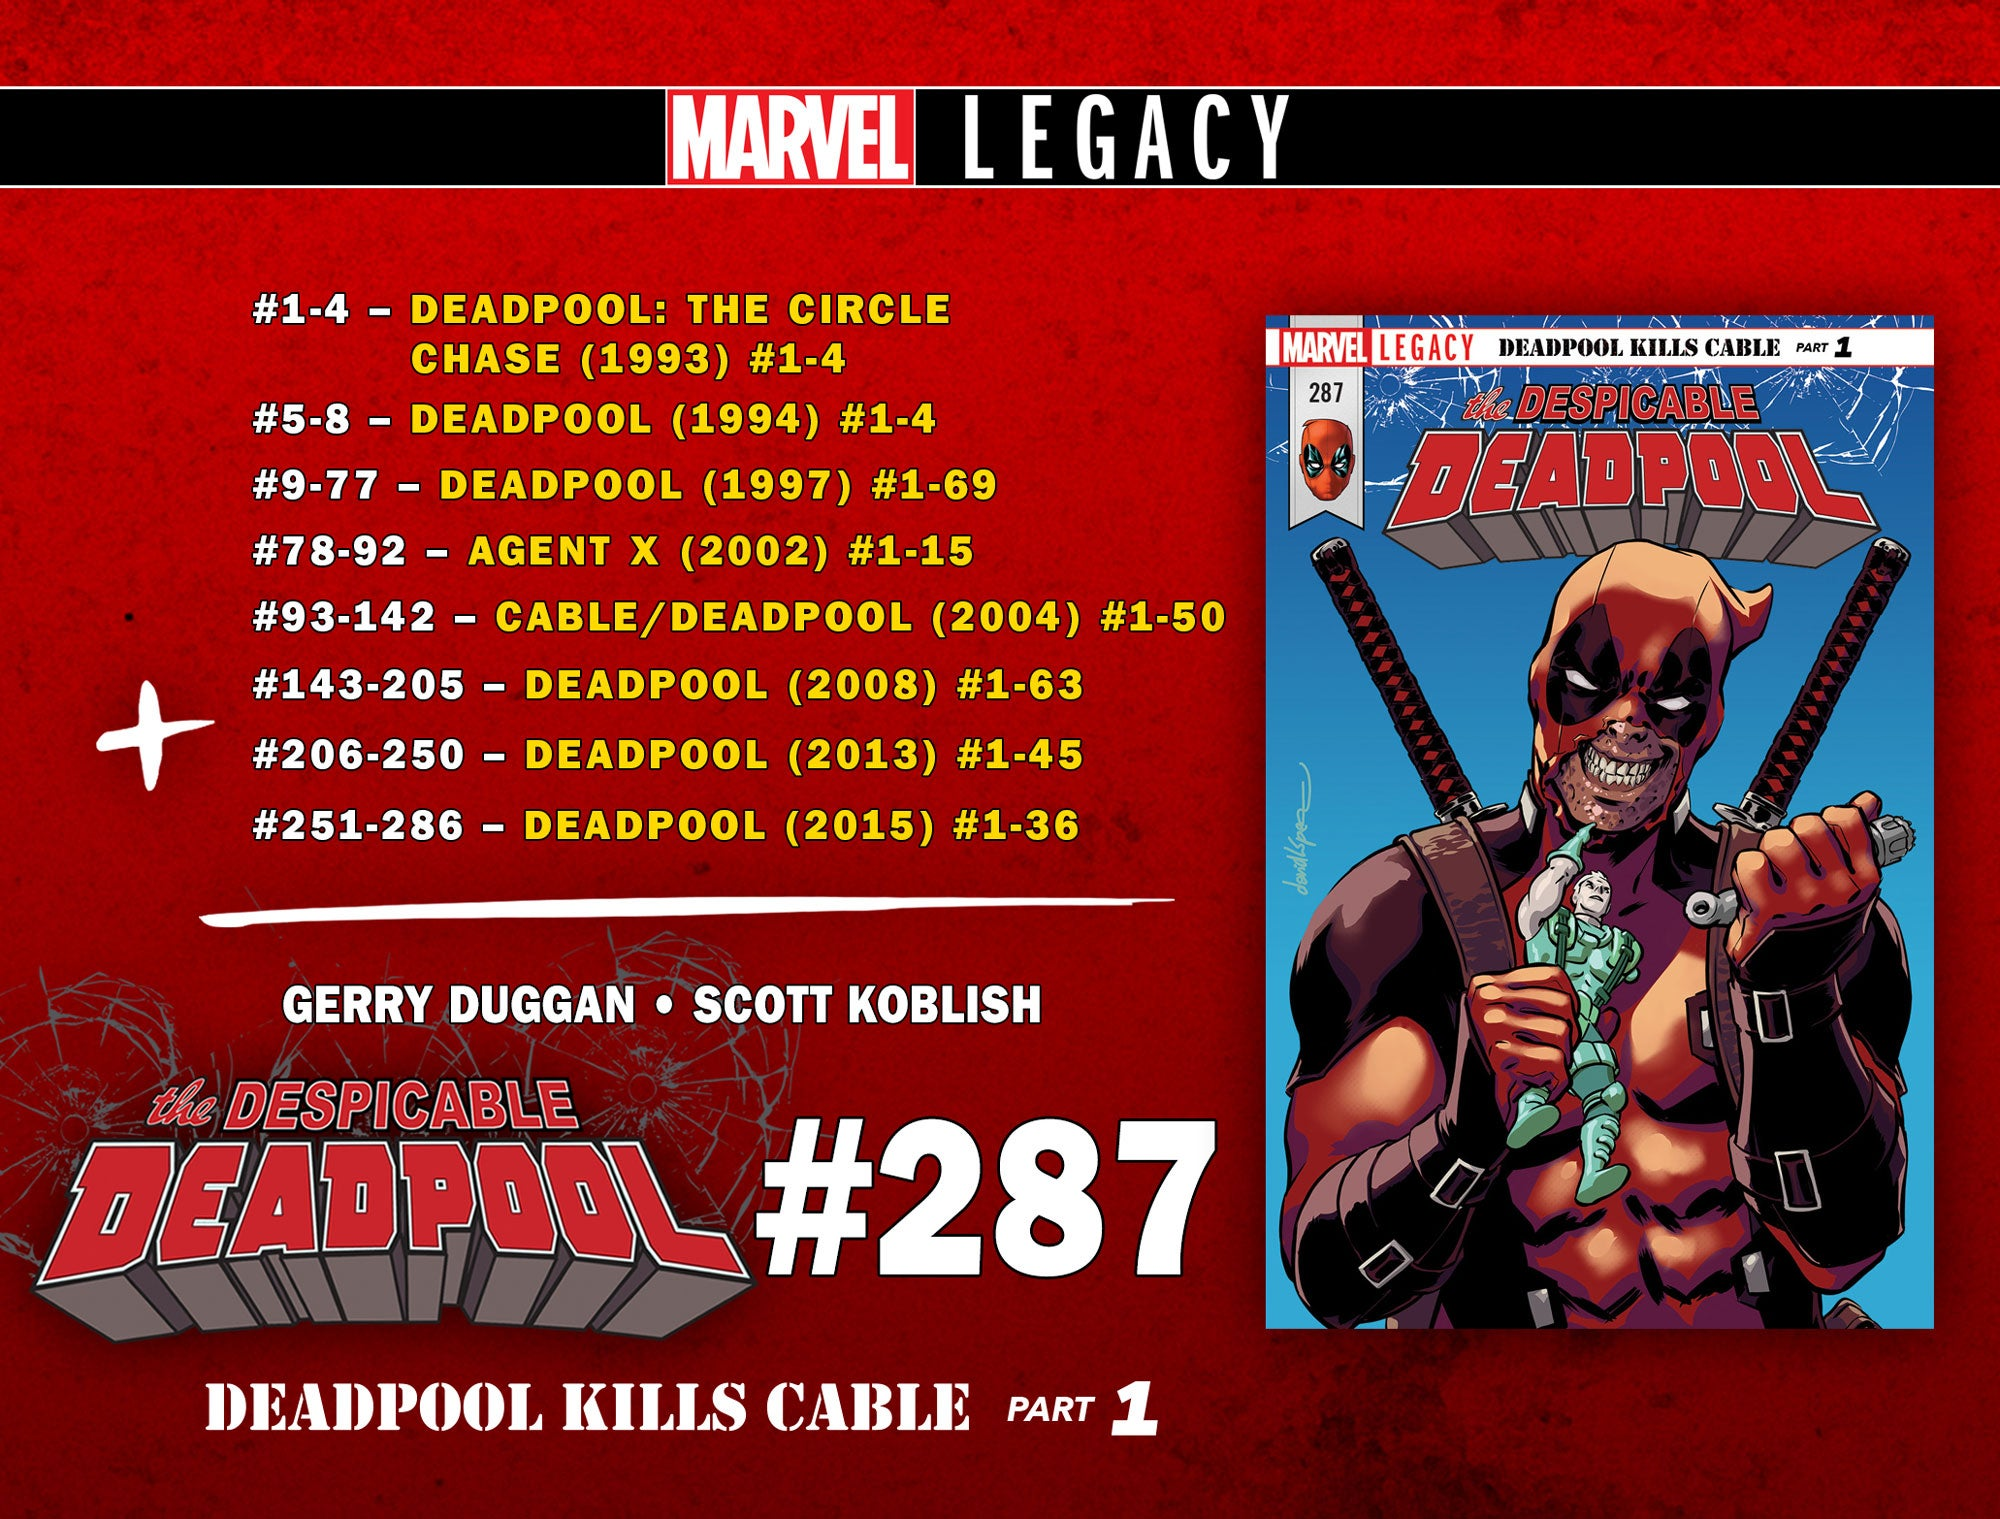 DESPICABLE DEADPOOL LEGACY RENUMBERING